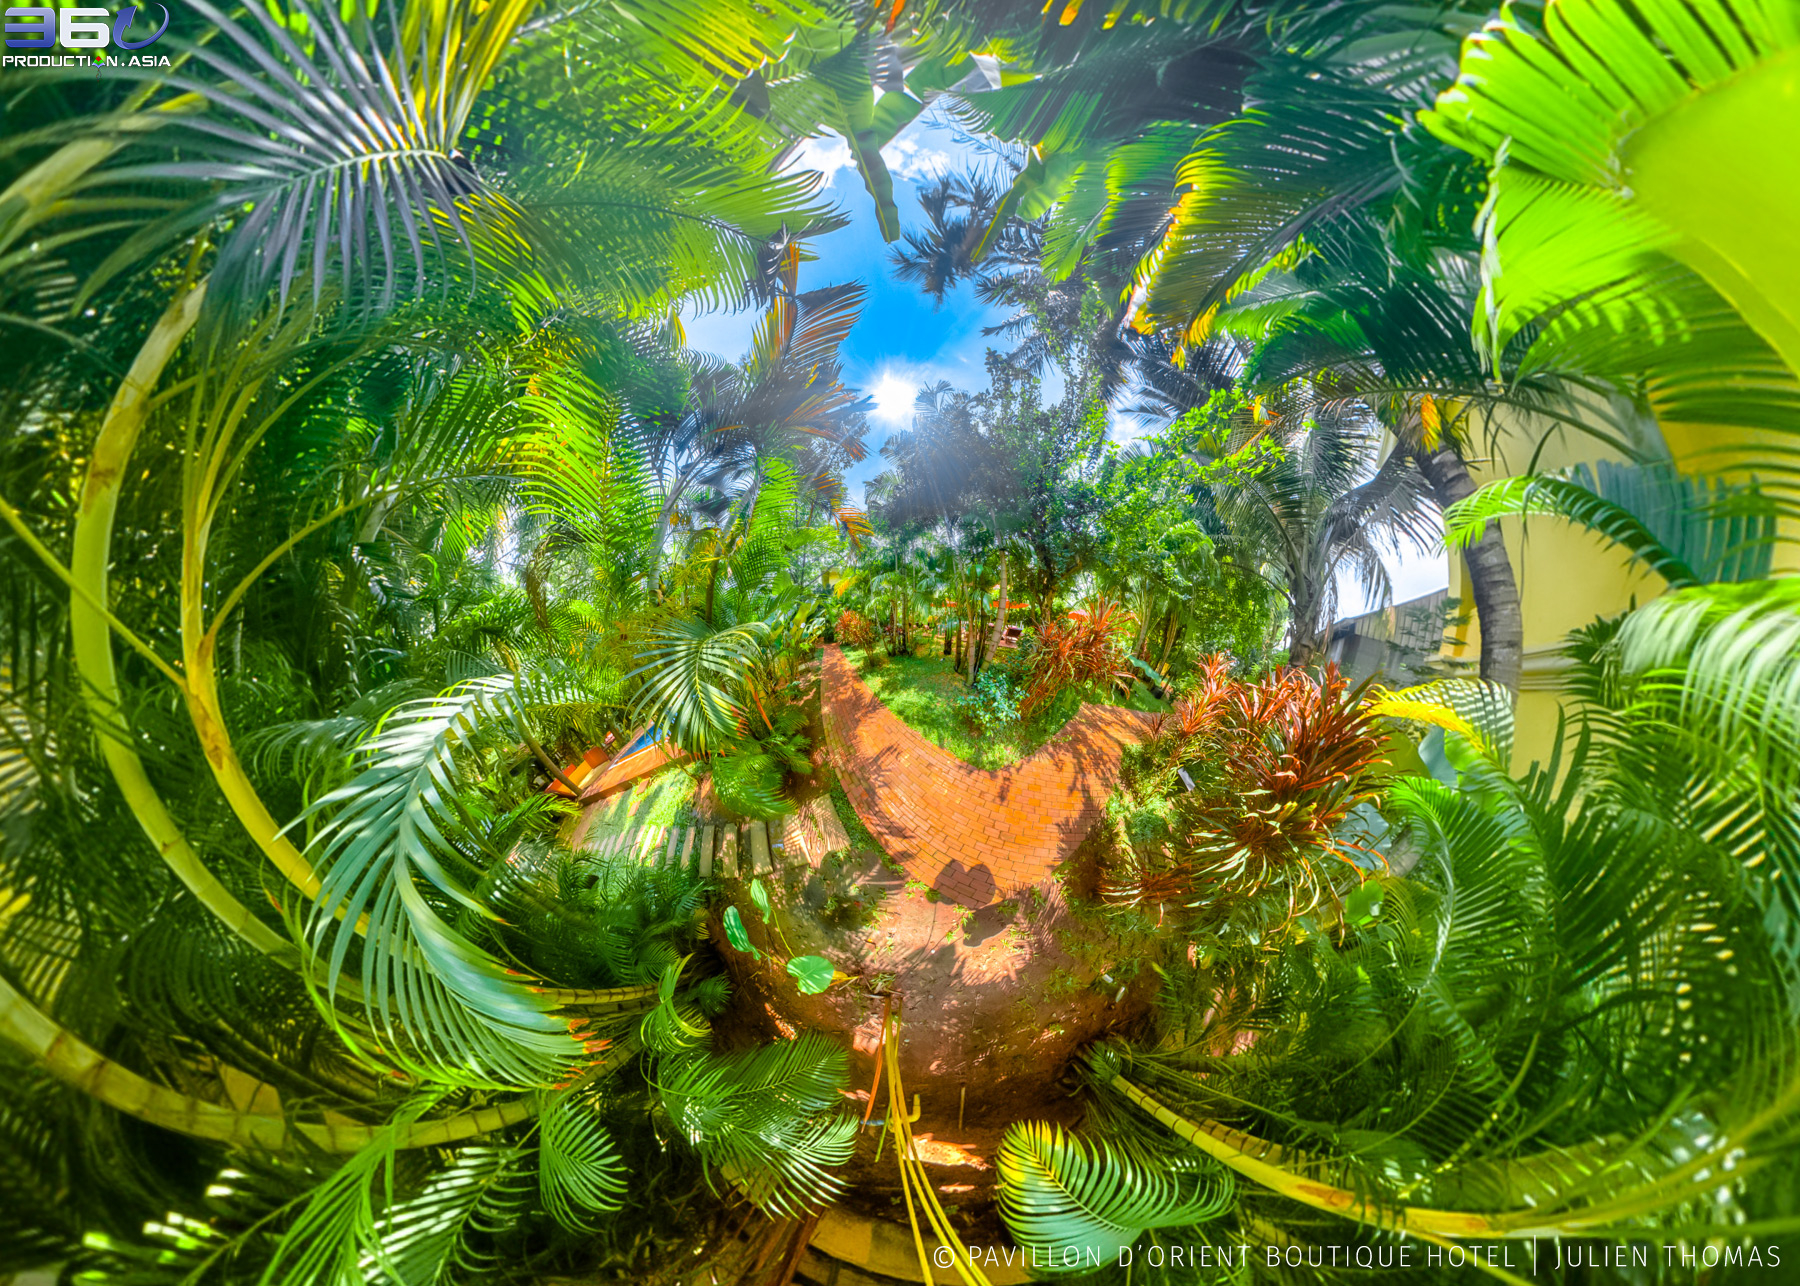 Mini World projection from 360 photo sphere in garden area at Pavillon d'Orient Boutique Hotel, Siem Reap - Cambodia.